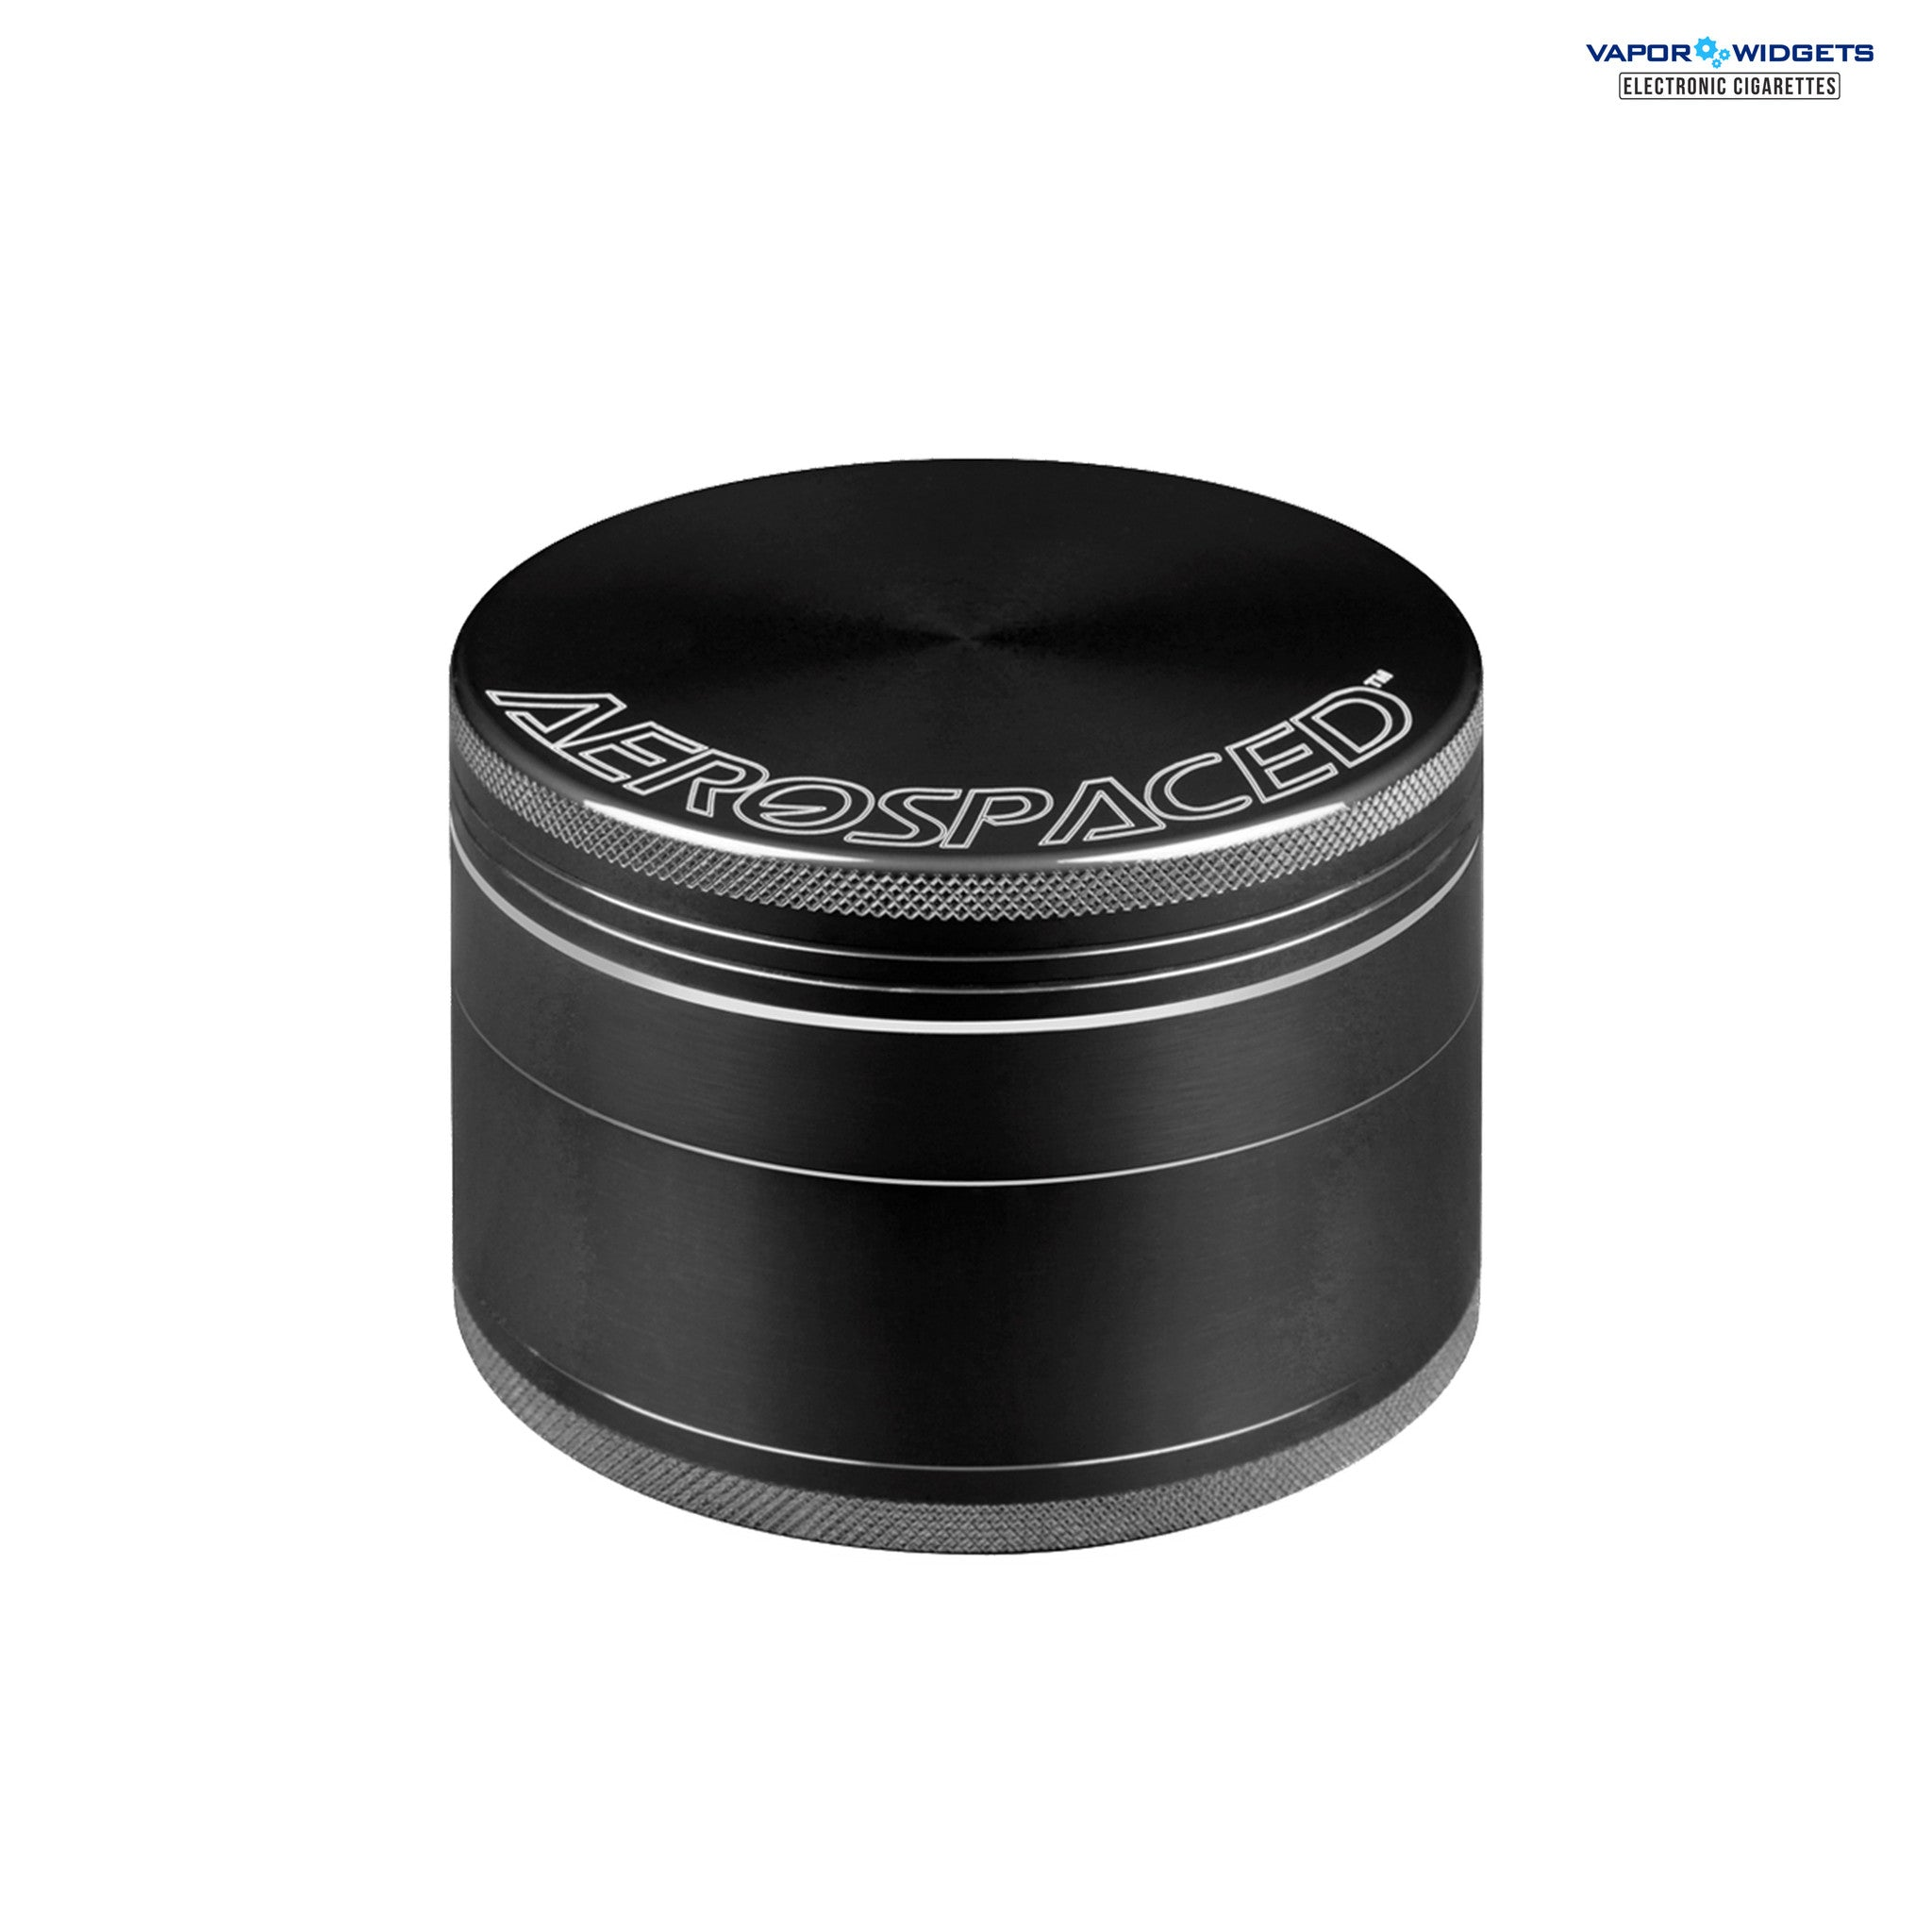 Aerospaced Dry herbs Grinder | Vapor Widgets